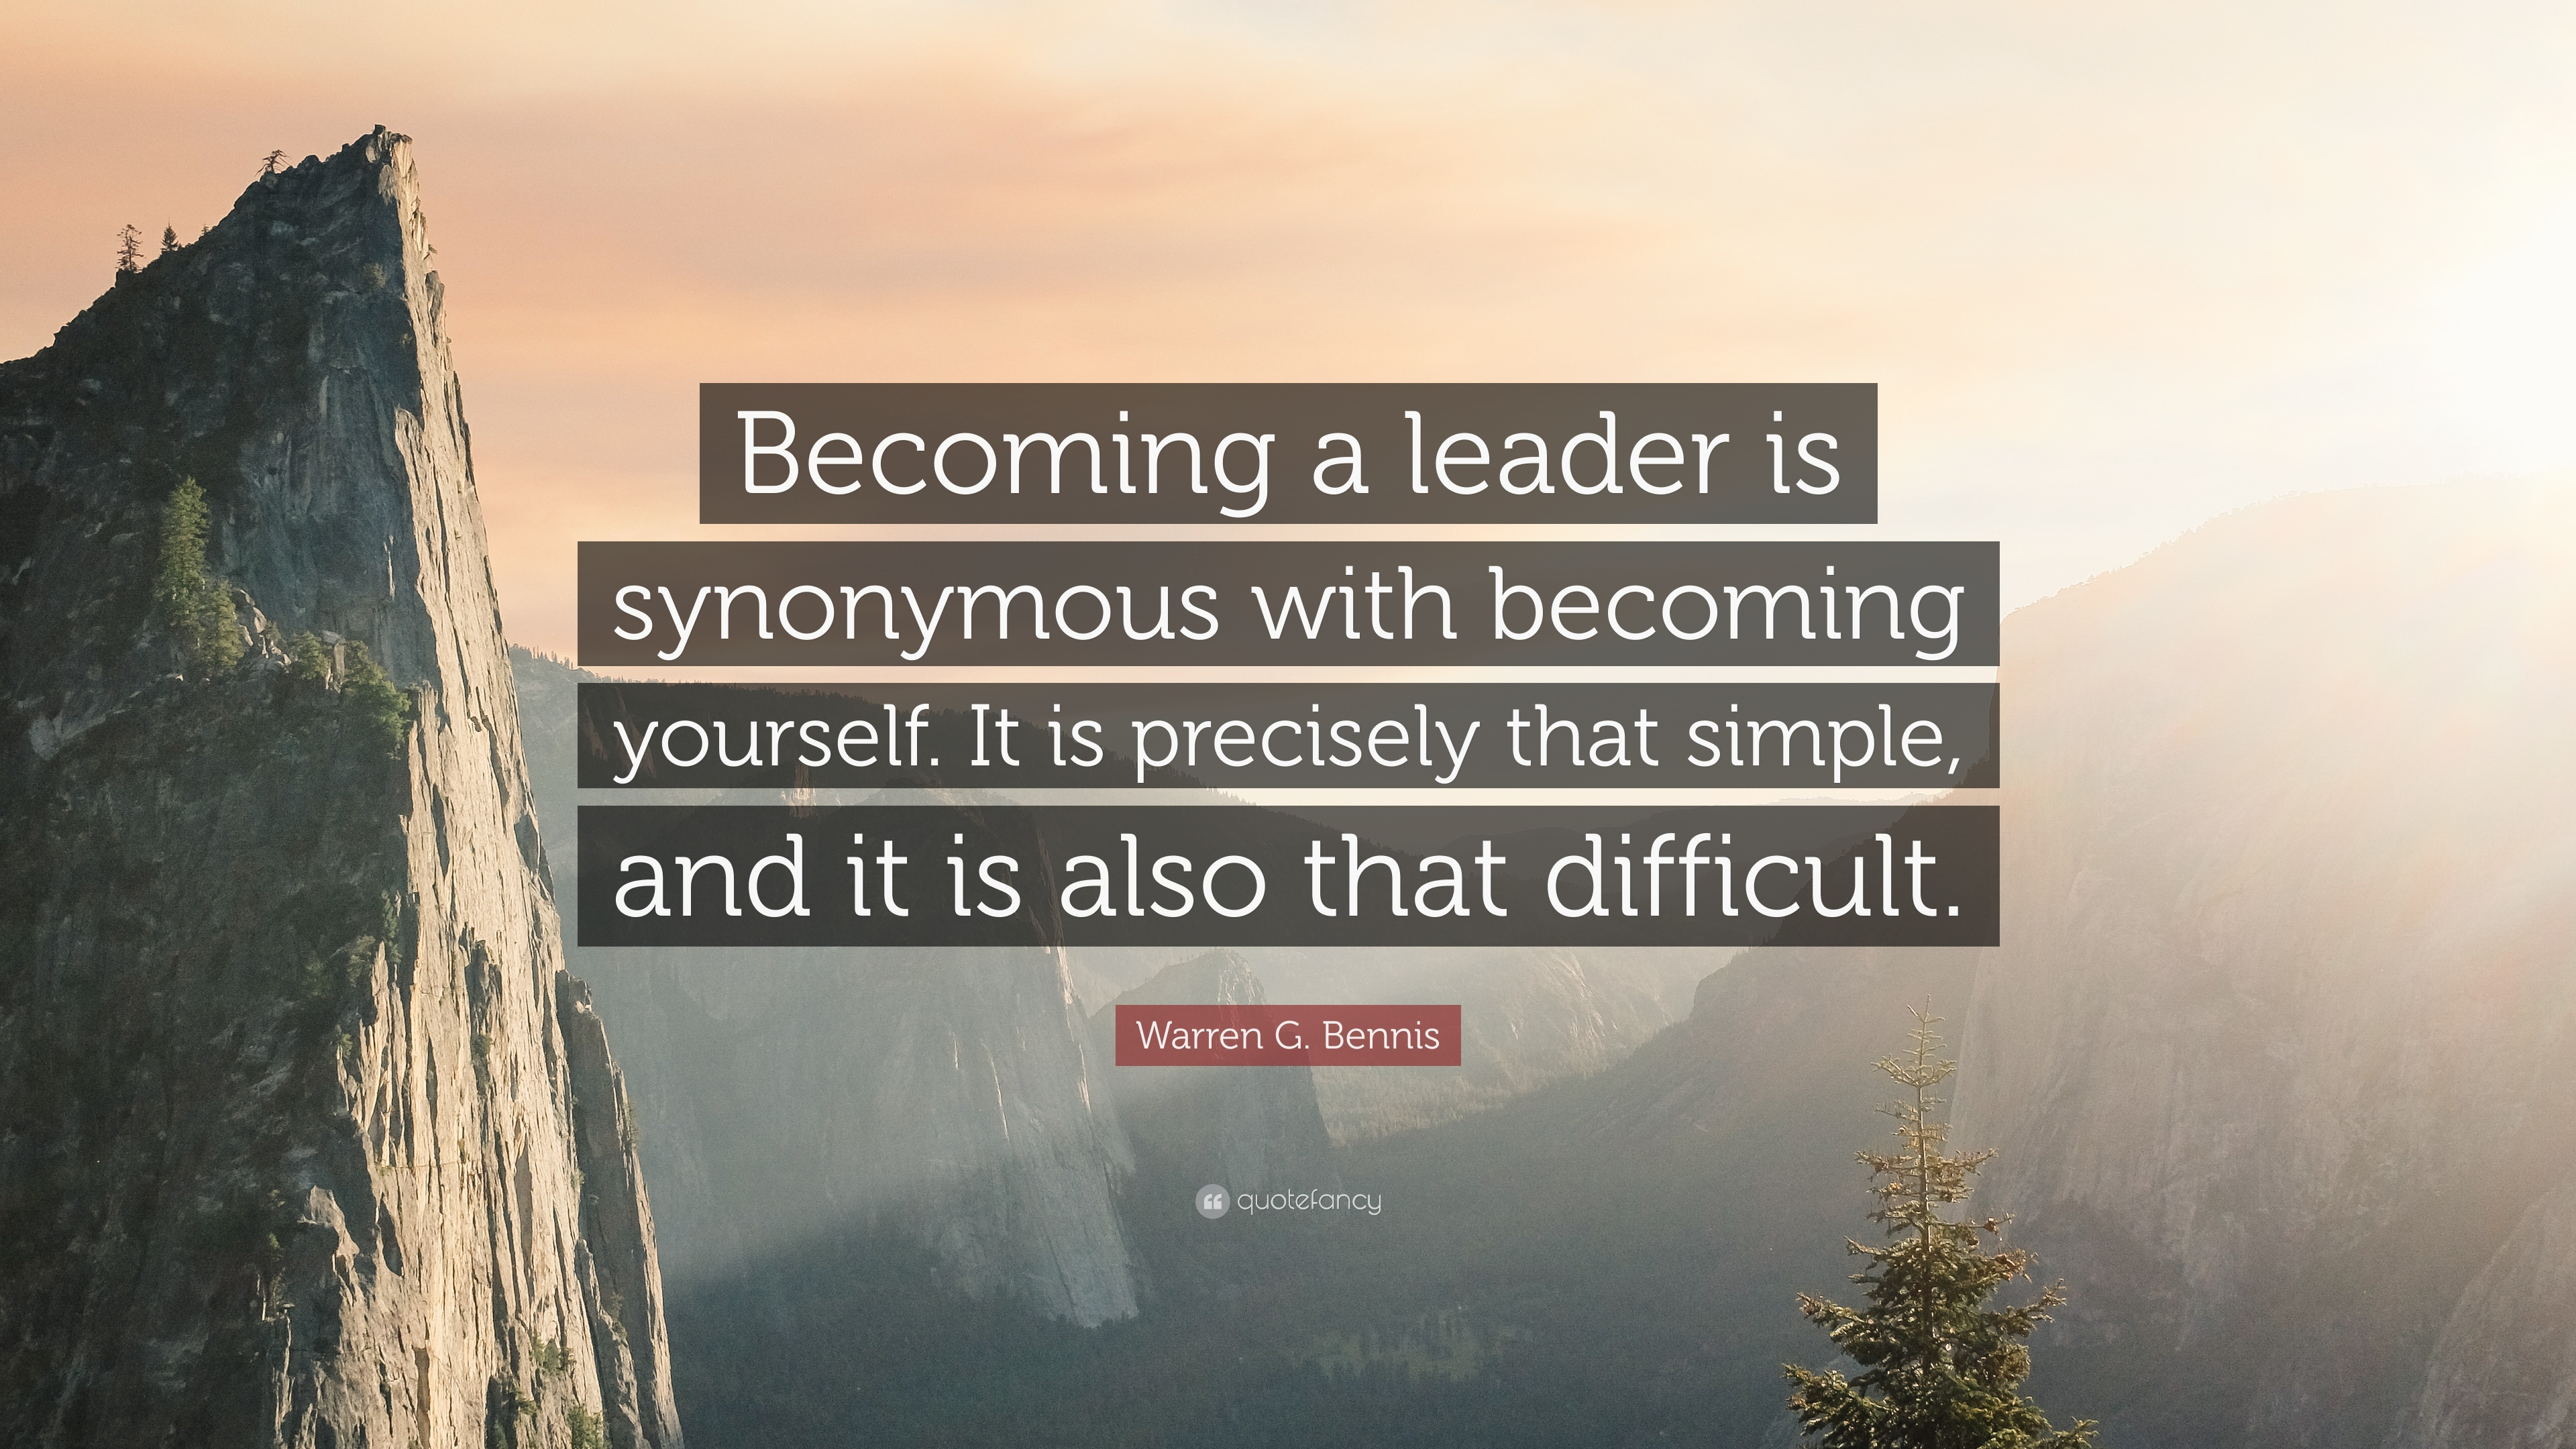 Warren G Bennis Quote Becoming A Leader Is Synonymous With